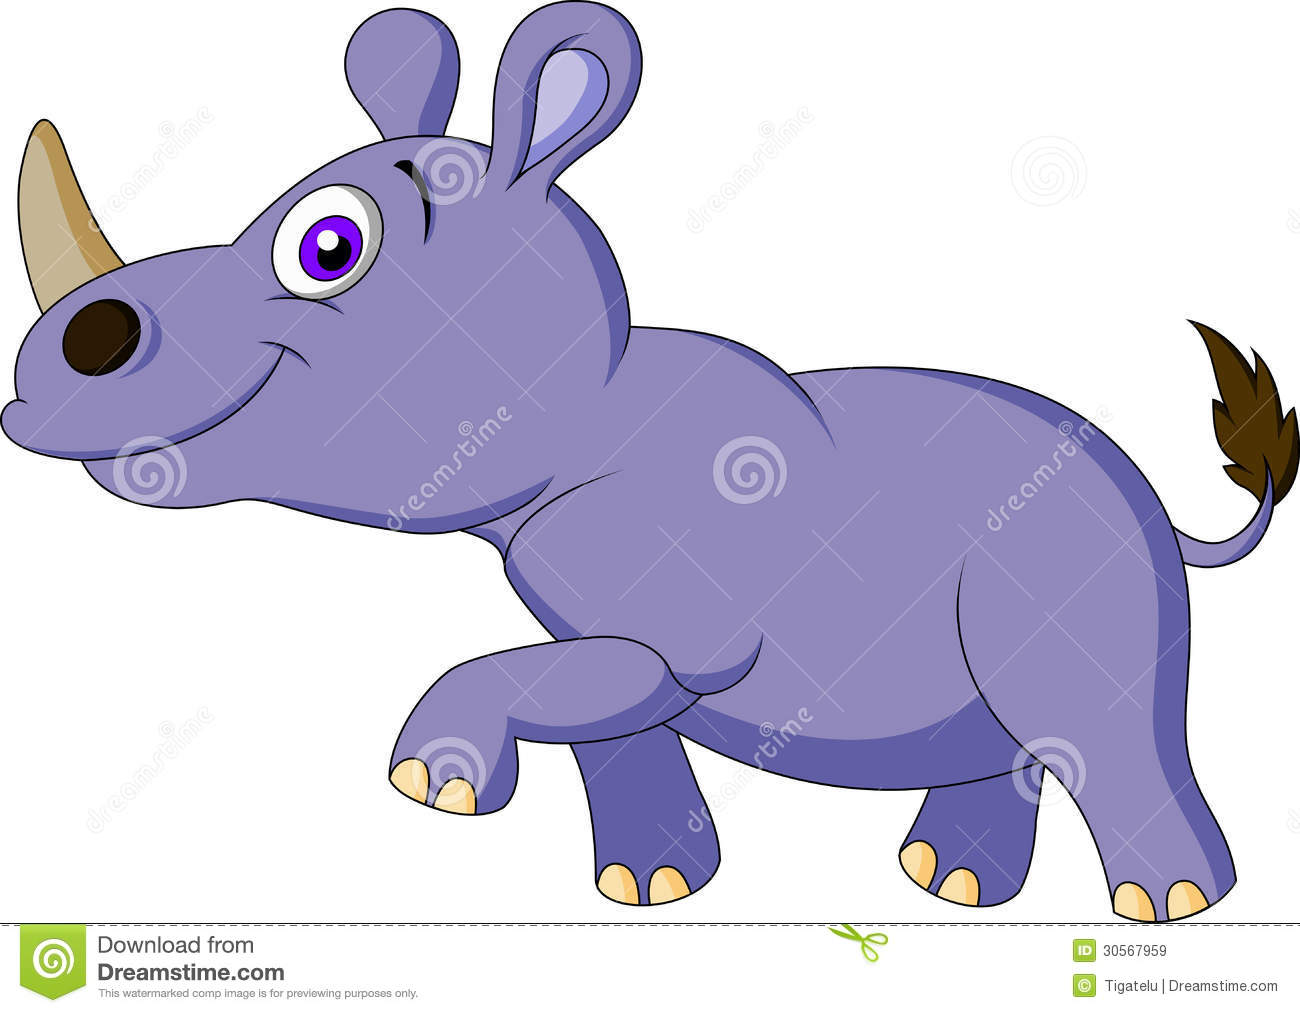 Cute rhino cartoon vector illustration cartoondealer